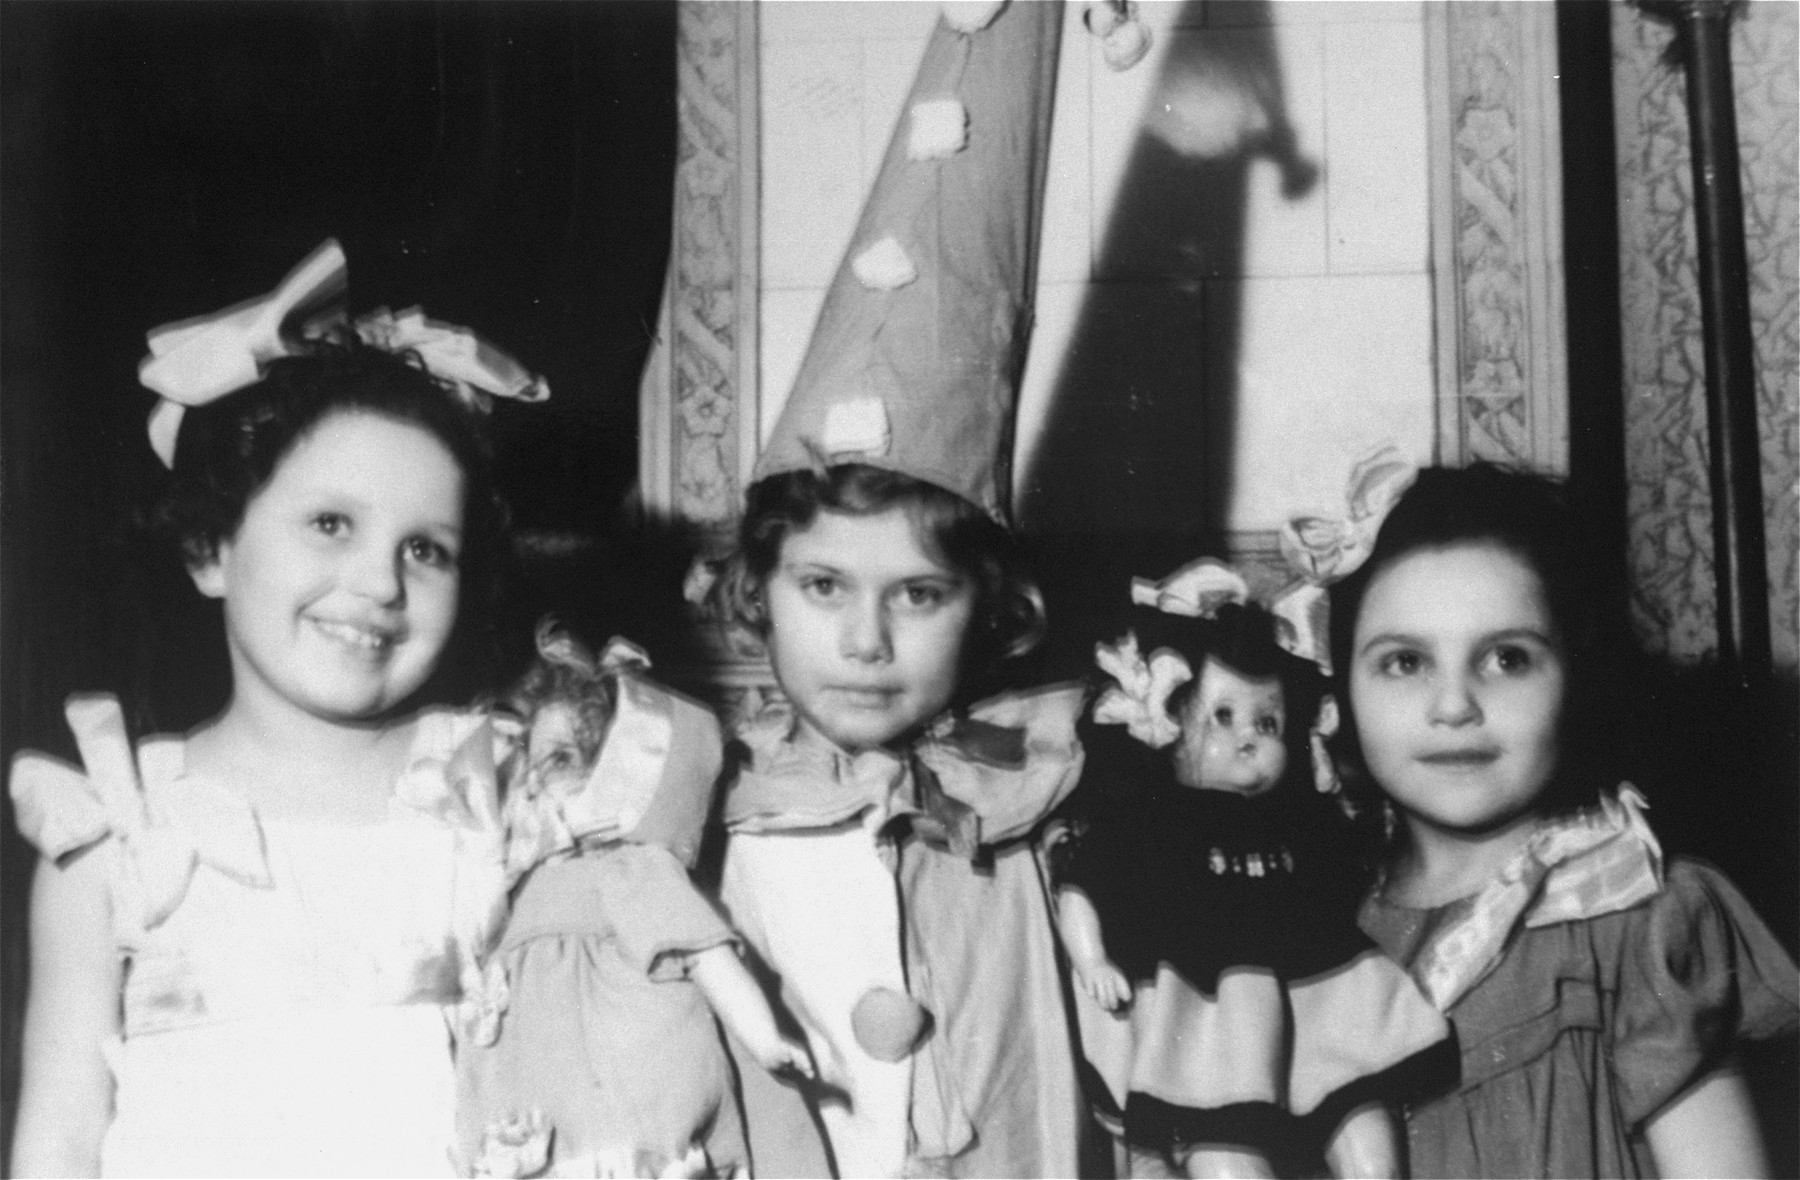 Hanukkah celebration at an orphanage for Jewish children in Lodz run by the Koordynacja (Coordination Committee).   All of the children at the home had been hidden by Christian families during the war. Pictured from left to right are: Basia David, Sabina (Inka) Kagan, and Renia. Basia had been hidden in Orlovo by the Polubinska family. Inka had been hidden by the Roztropowicz family in Nidzica.